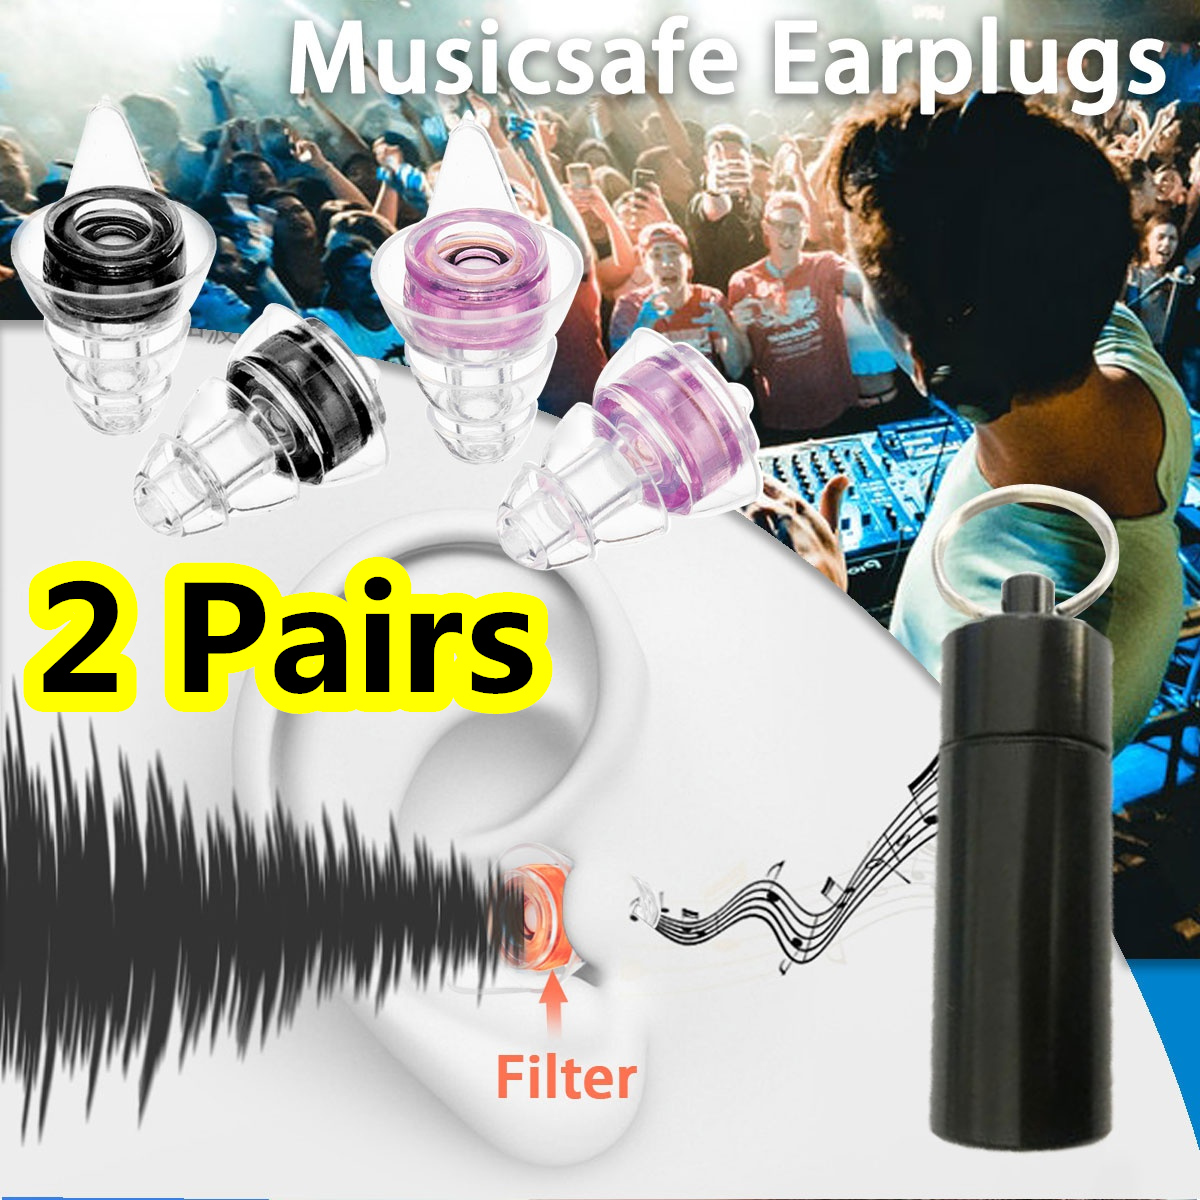 2Pairs Noise Cancelling Hearing Protection Earplugs Reusable Waterproof Silicone Ear plugs For Concerts Musician Motorcycles safurance 2pairs noise cancelling hearing protection earplugs for concerts musician motorcycles reusable silicone ear plugs